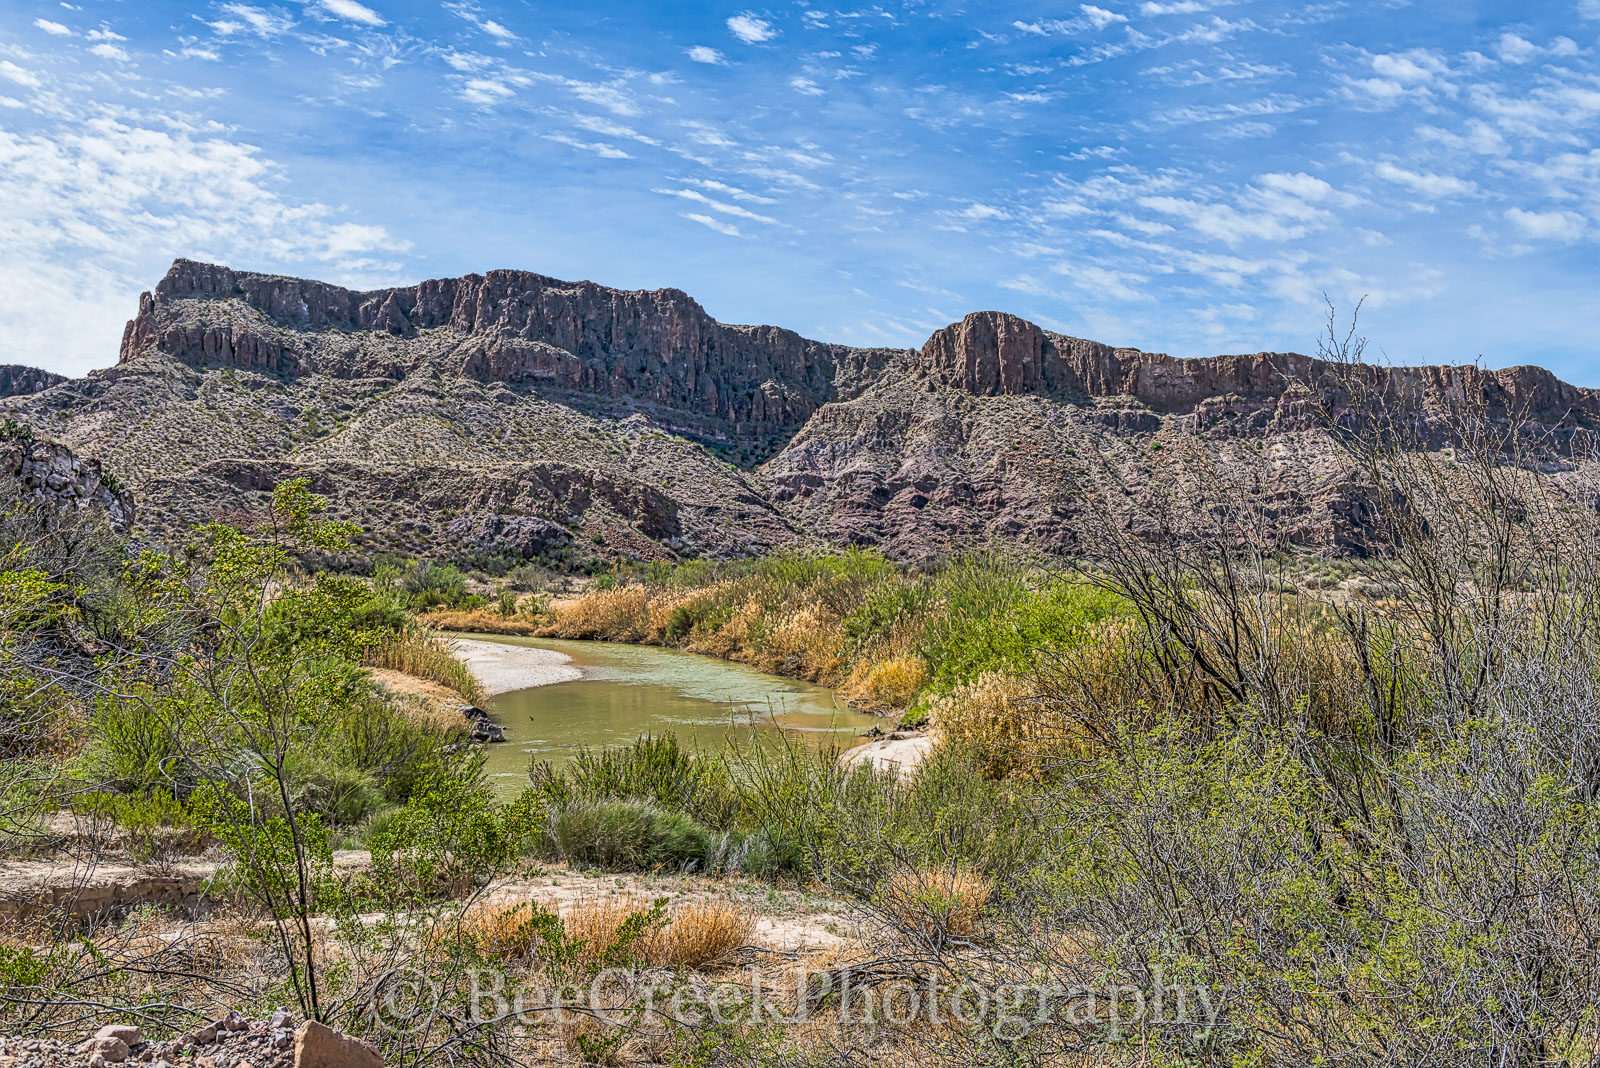 Big Bend State Park, Rio Grande River, River, clouds, landscape, scenic, view, photo